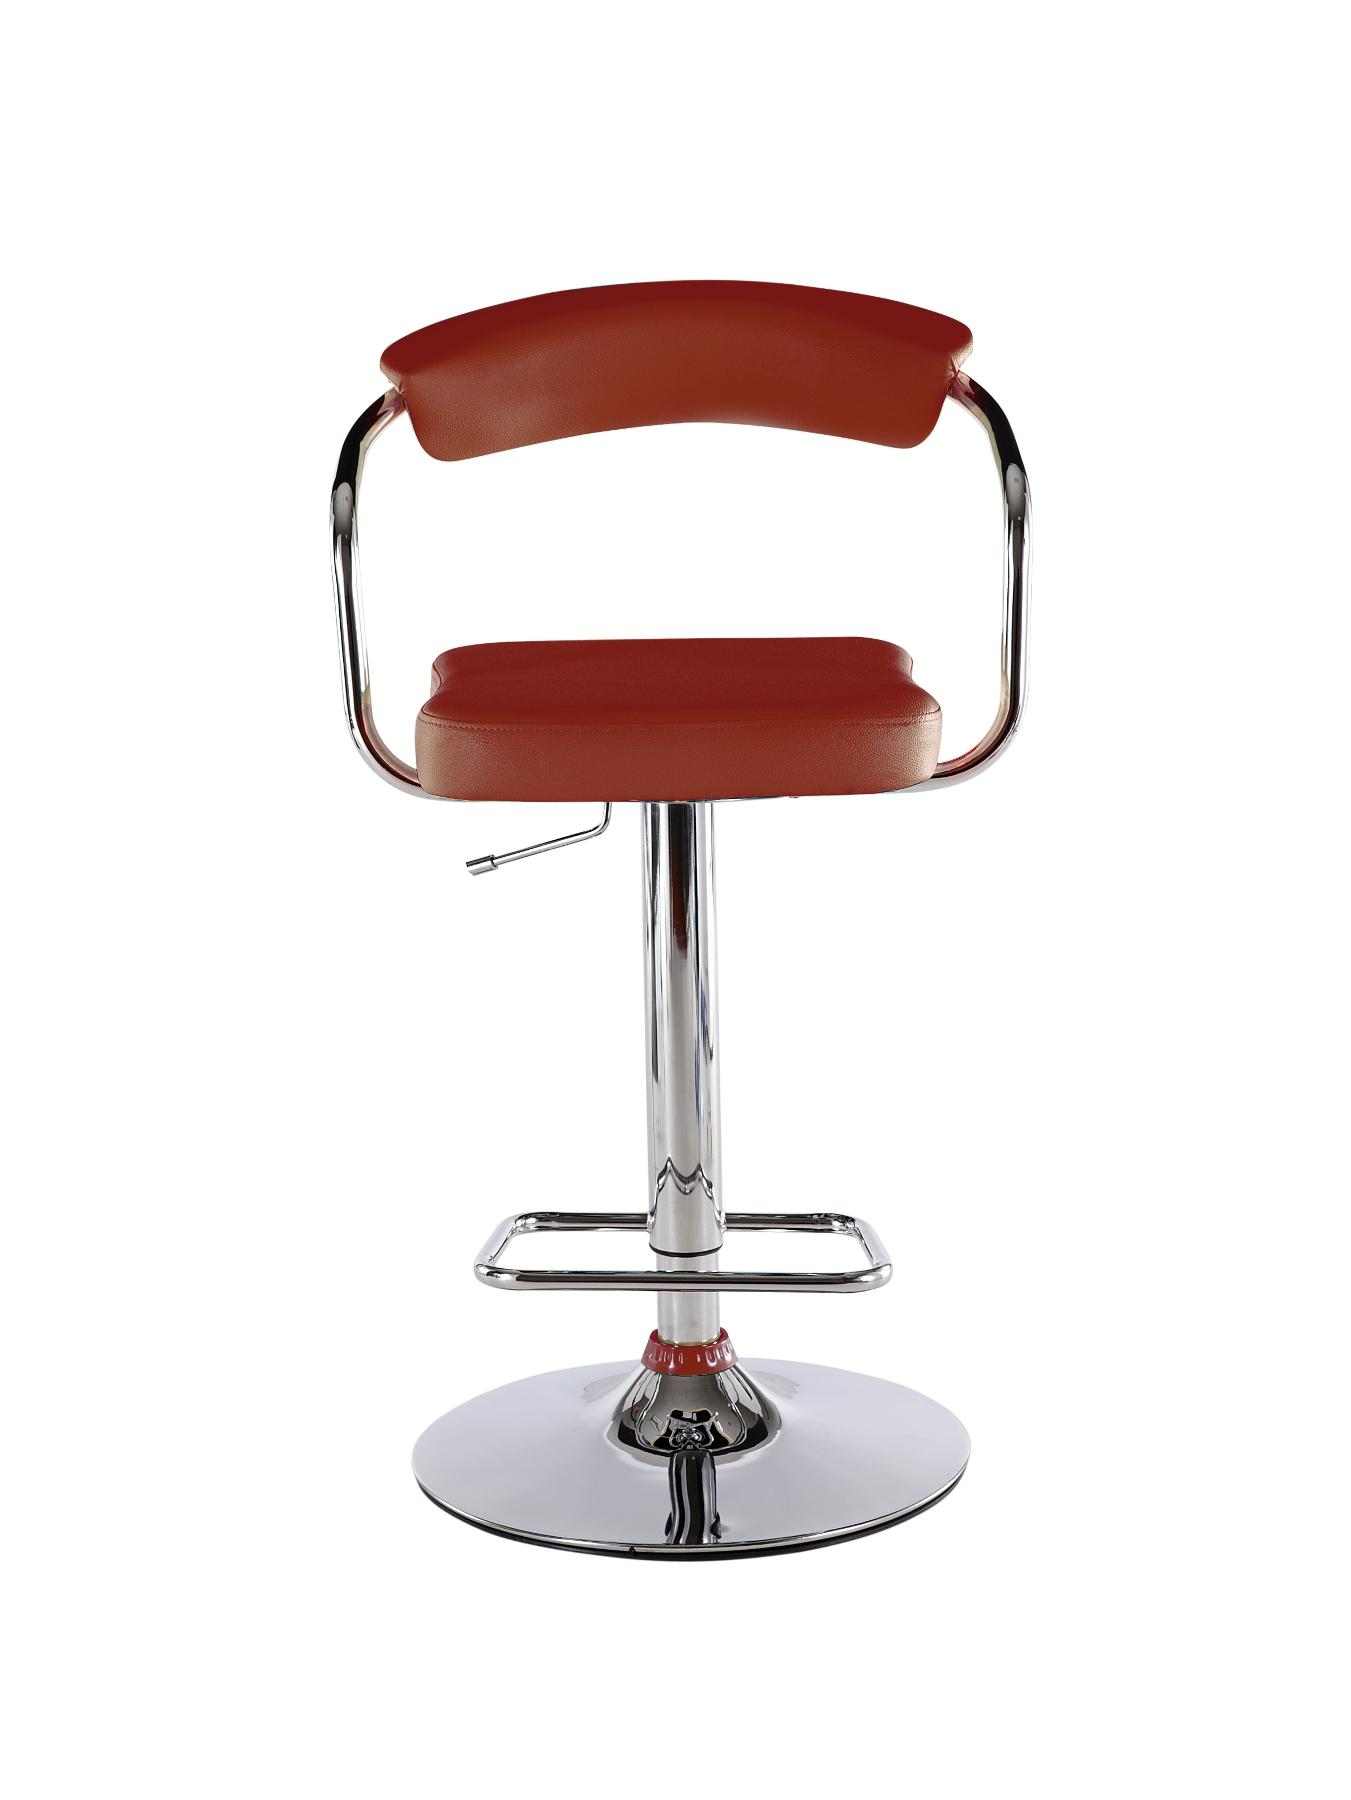 Texas Bar Stool - Red, Red,Black,Cream